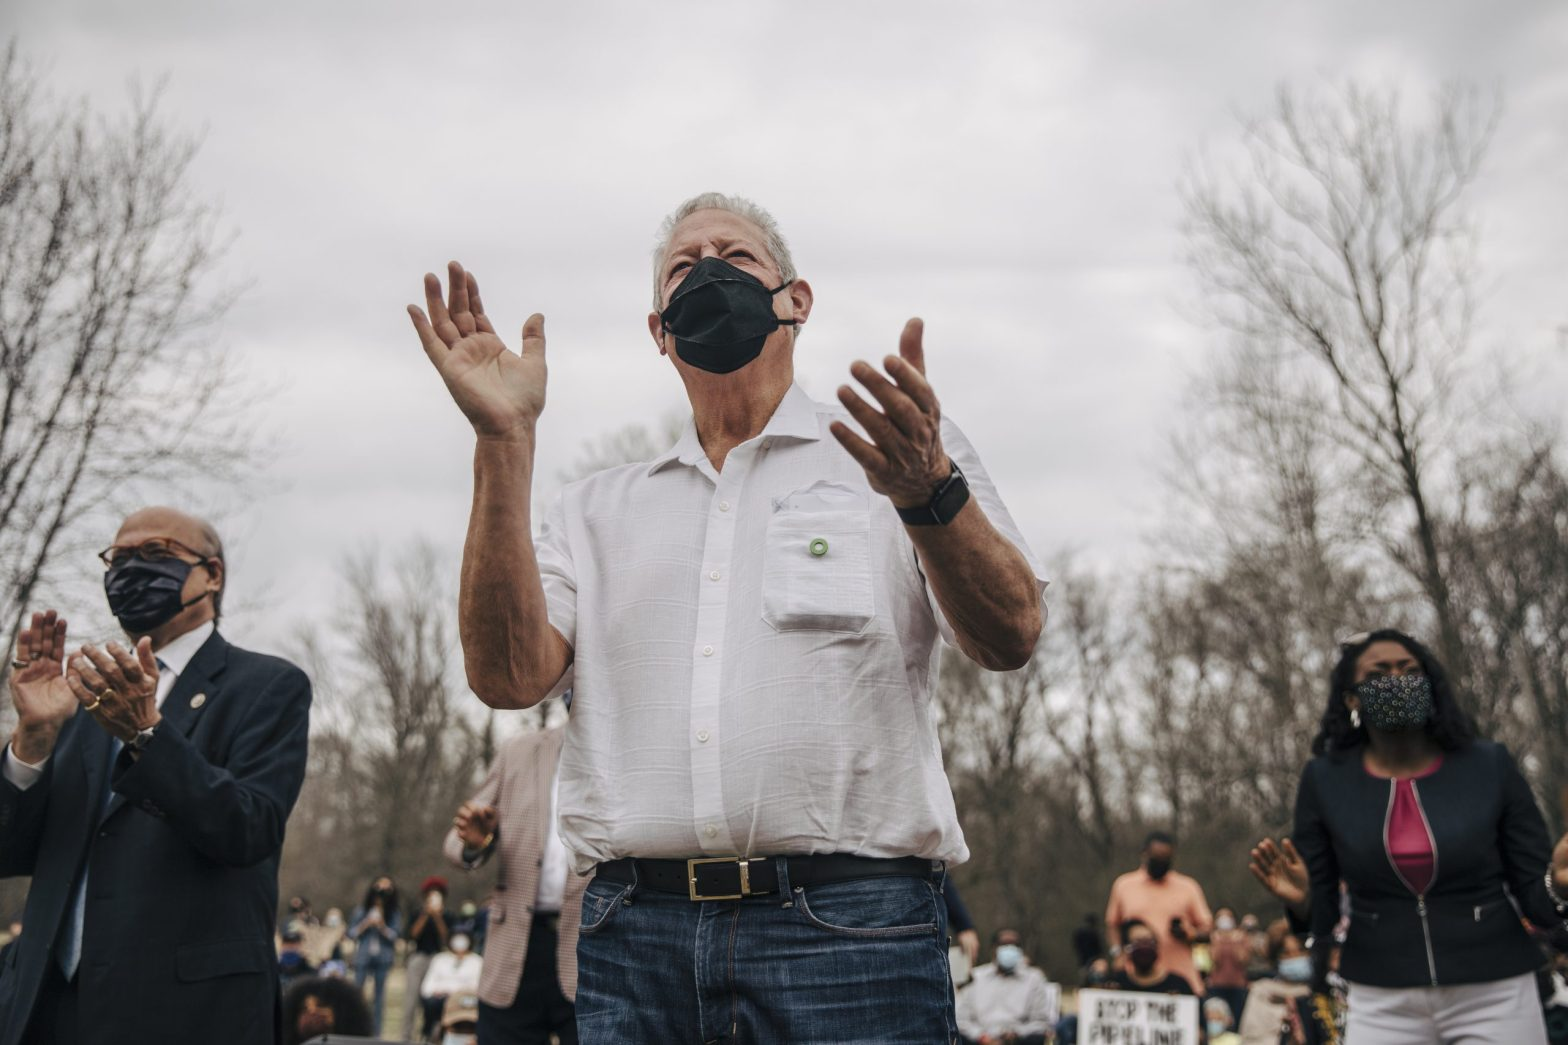 Former Vice President Al Gore claps while at a rally organized by the Memphis Community Against the Pipeline at Alonzo Weaver Park on Sunday afternoon. Gore and his organization Climate Reality have spoken out against the Byhalia Connection Pipeline project that is proposing a route through southwest Memphis neighborhoods that are primarily Black. Credit: Andrea Morales for MLK50